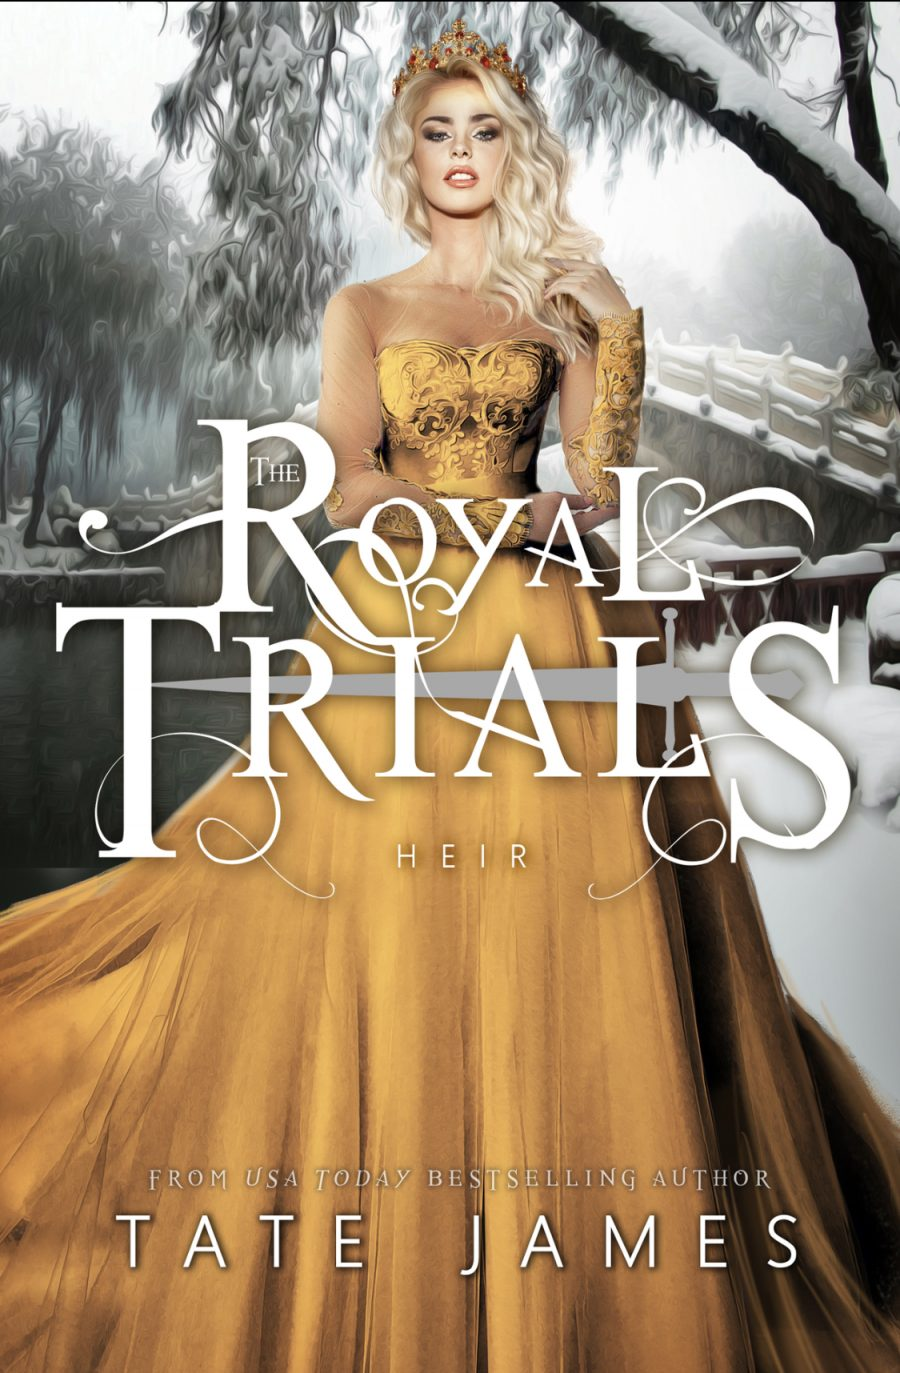 Heir (The Royal Trials - Book 3) by Tate James - A Book Review #BookReview #Fantasy #SlowBurn #RH #WhyChoose #SeriesComplete #5Stars #KindleUnlimited #KU